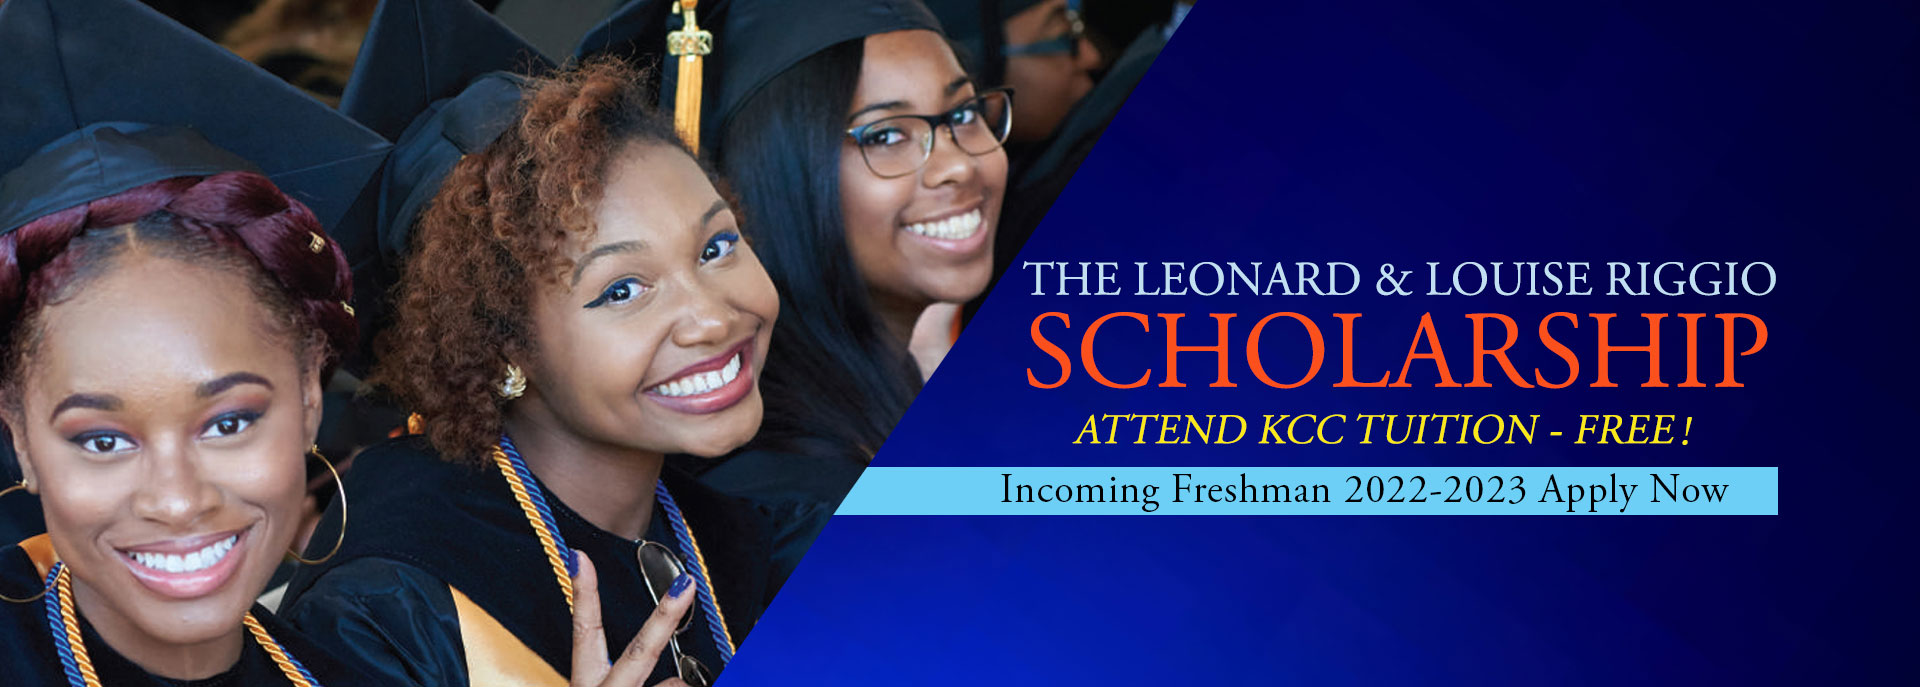 Leonard and Louise Riggio Scholarship: Apply Now, Attend KCC Tuition-Free!